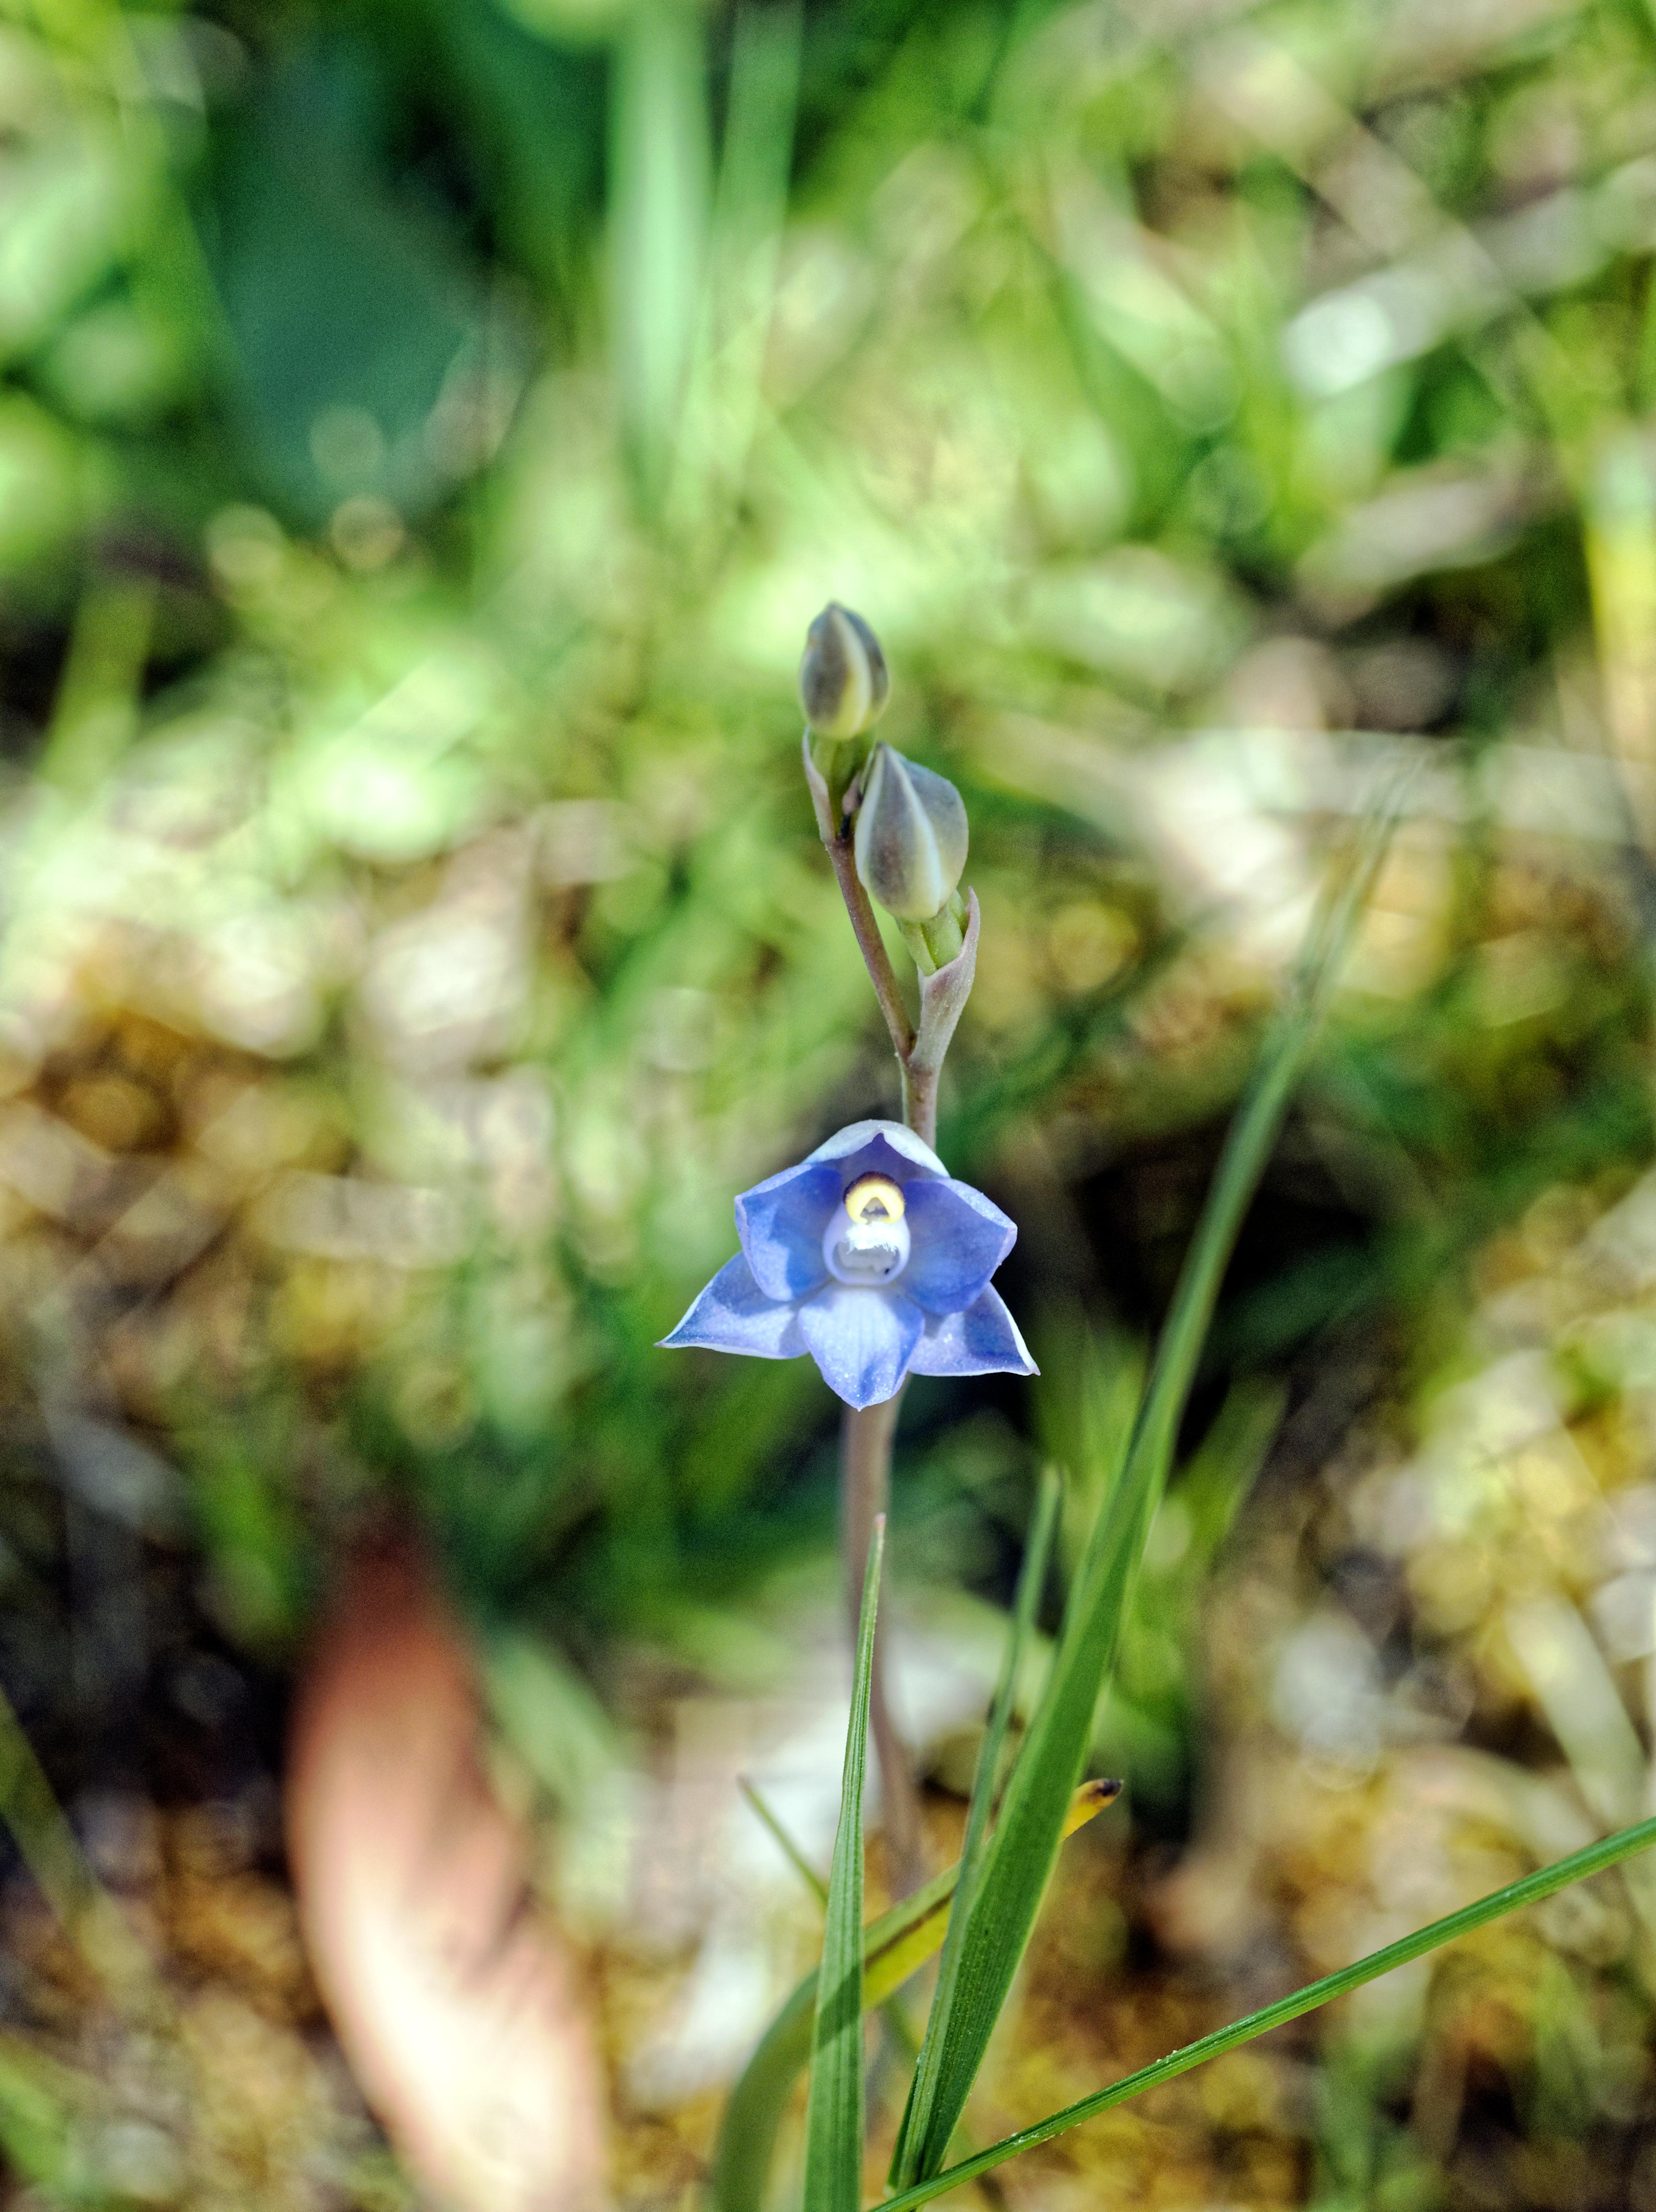 This should be Thelymitra-pauciflora-6.jpeg.  Is it missing?